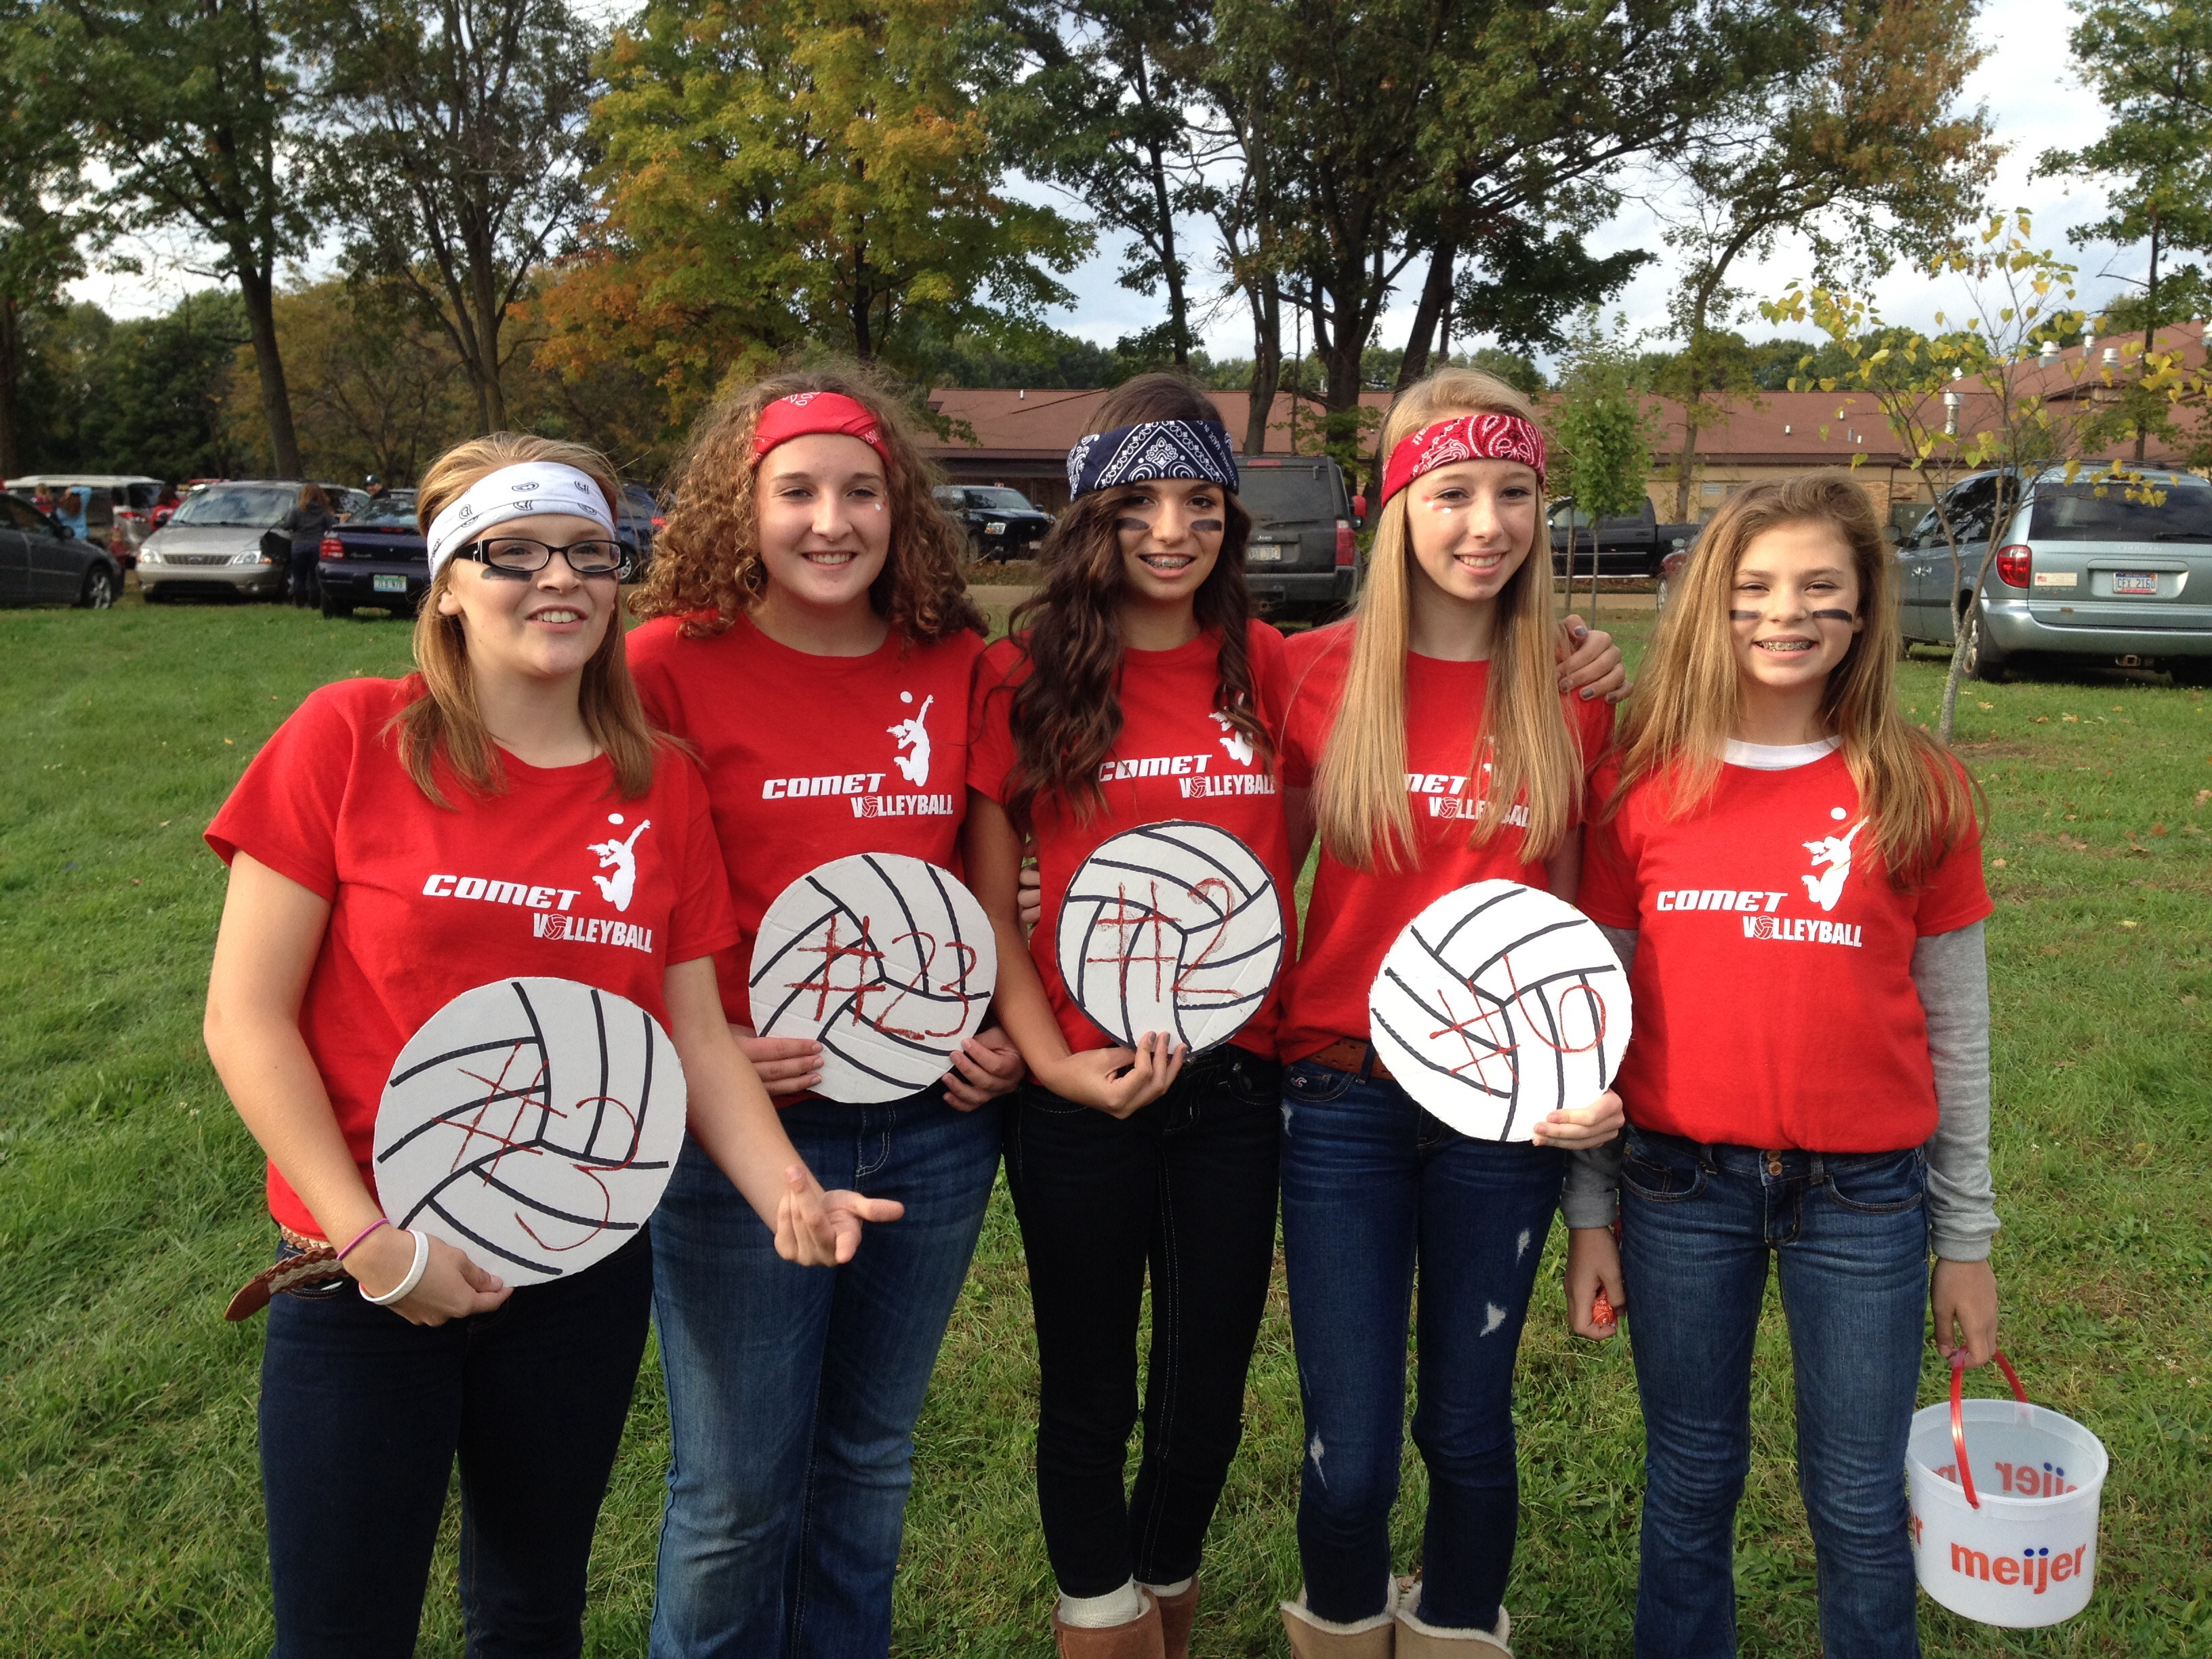 hh homecoming 8th grade volleyball t shirt photo - Homecoming T Shirt Design Ideas